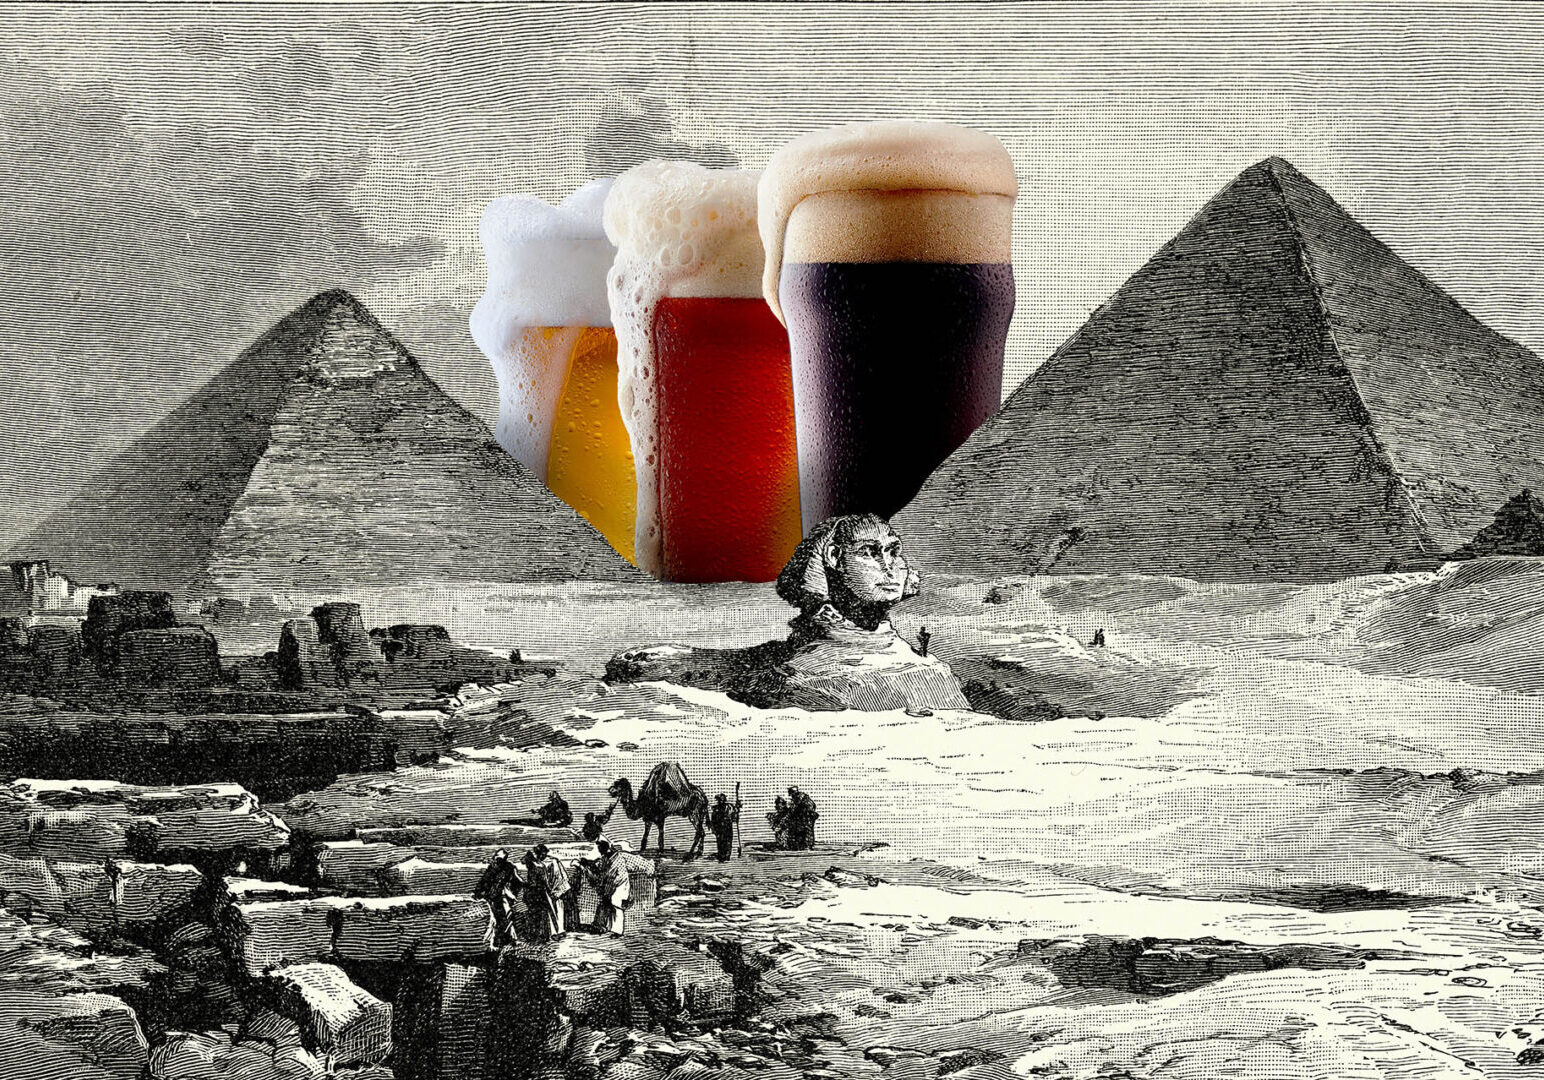 The World oldest known beer factory discovered in Egypt-Beer in Ancient Egypt